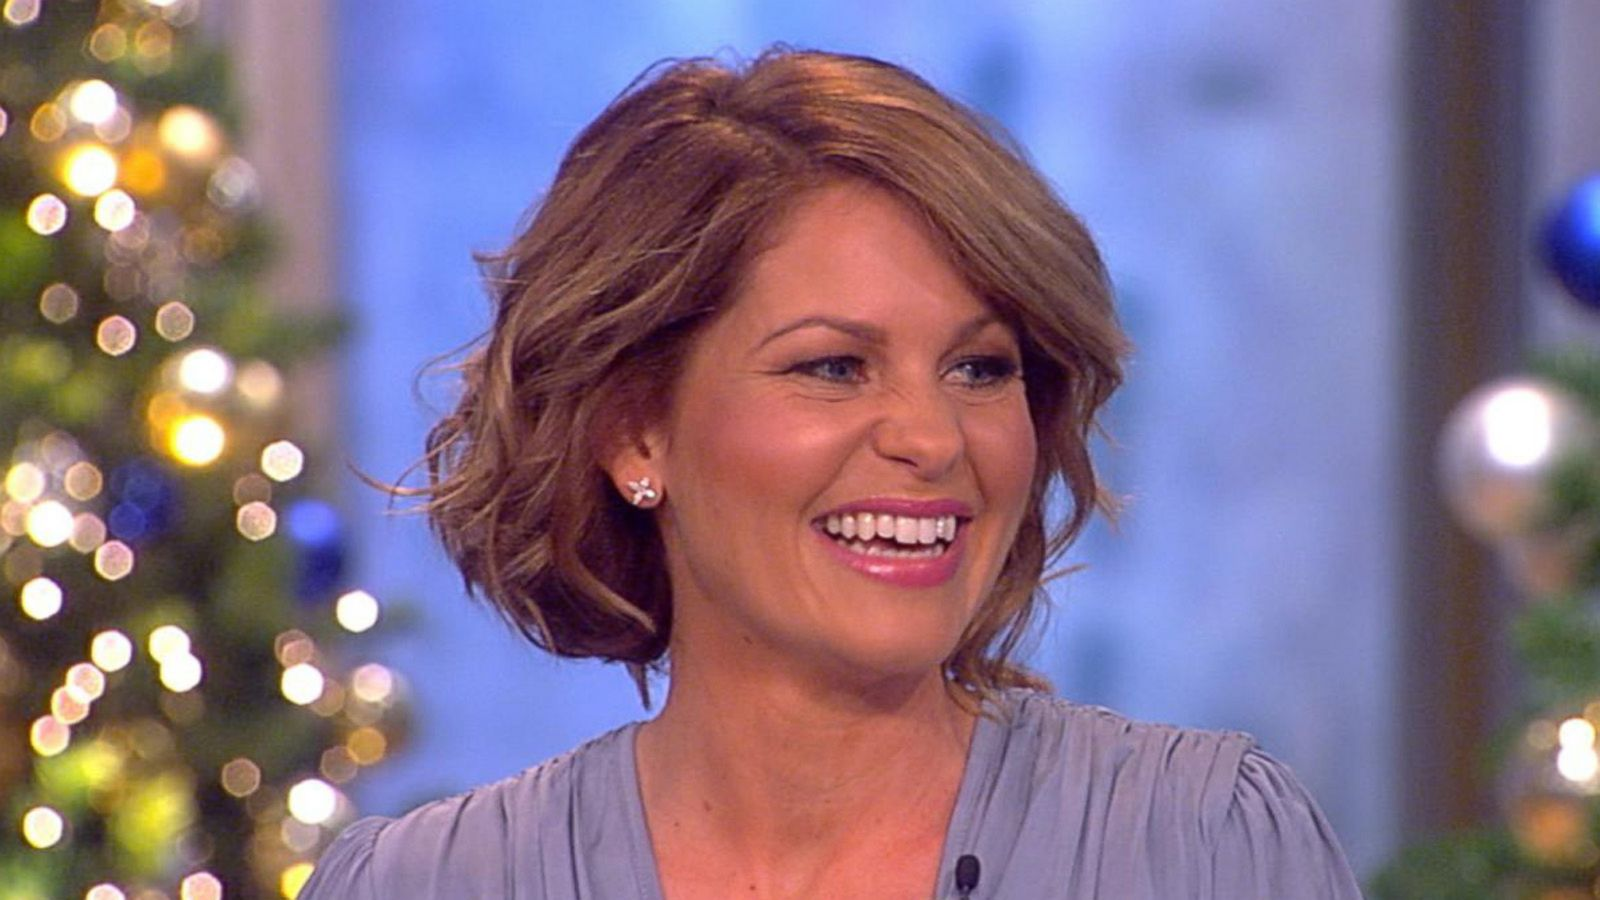 VIDEO: Candace Cameron Bure Announces Her Departure From 'The View'